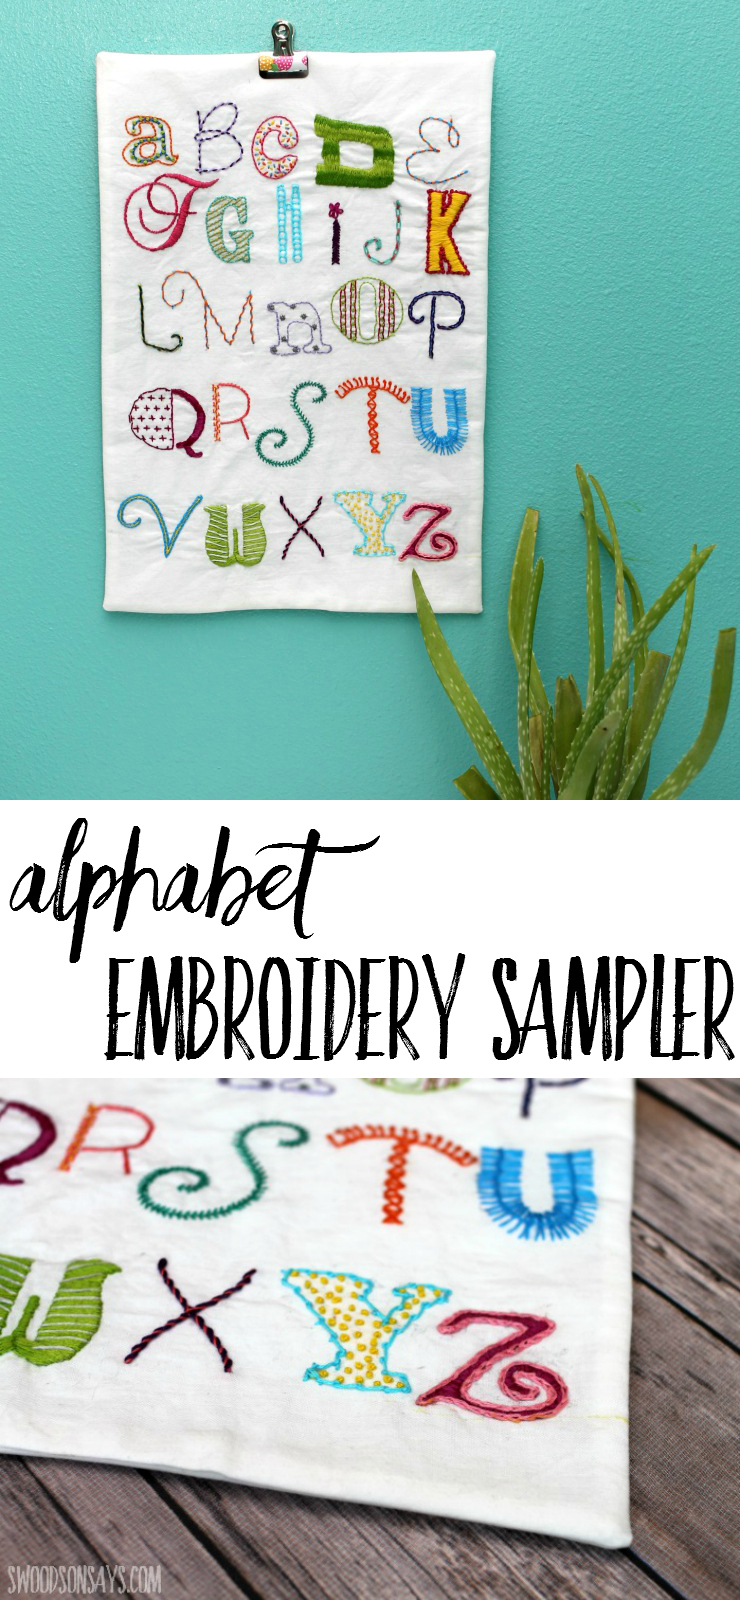 Check out this alphabet ABC embroidery sampler! Learn different stitches while making a beautiful embroidery piece for a nursery or play room.